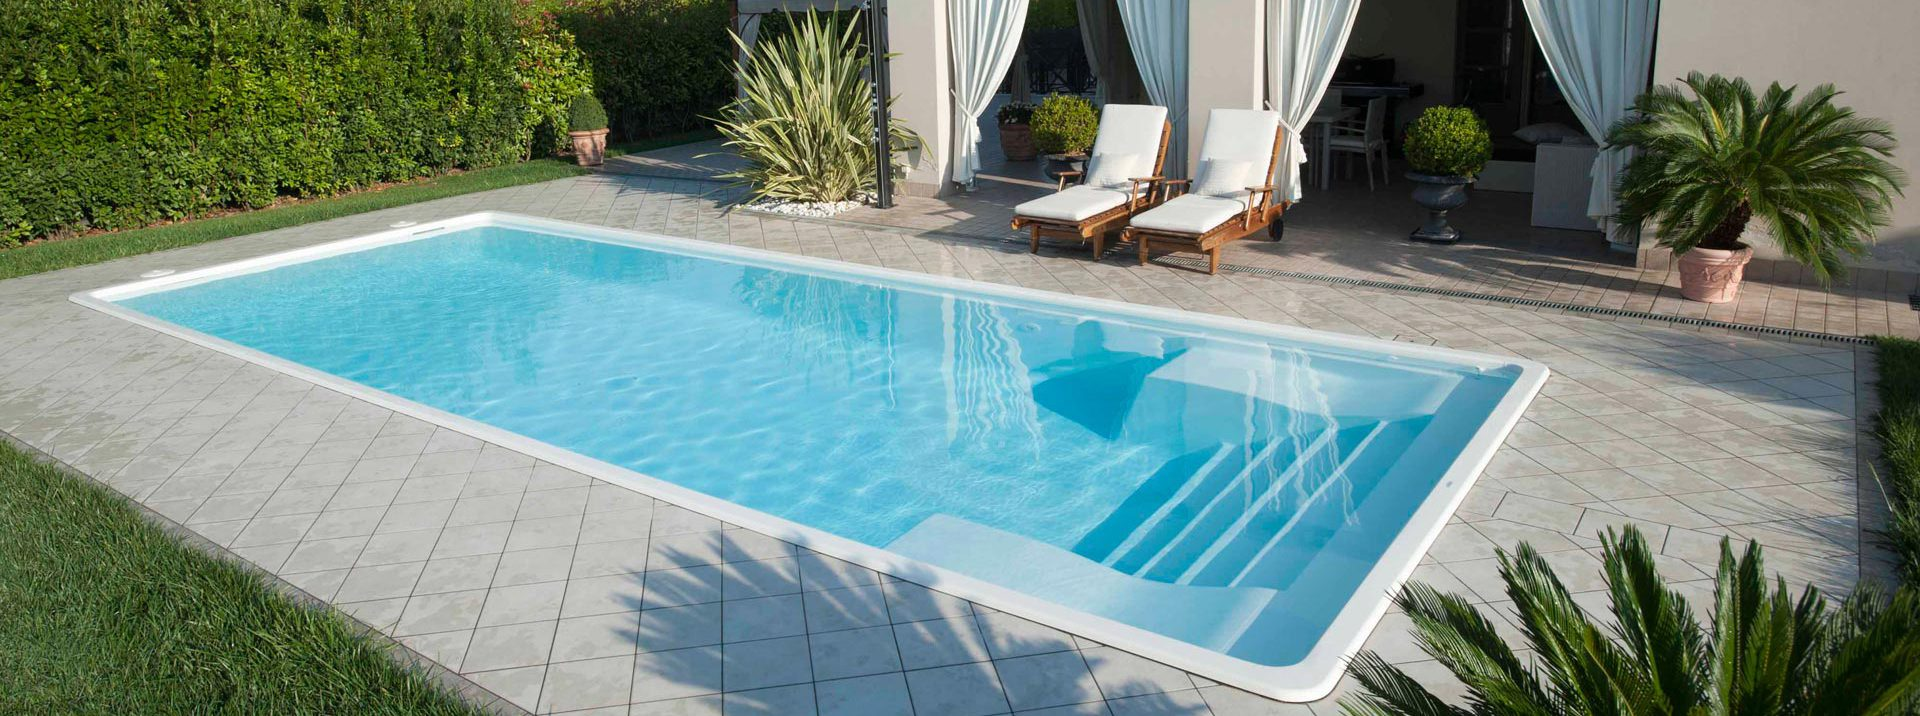 WaterFrame  Precasted swimming pools and water treatment